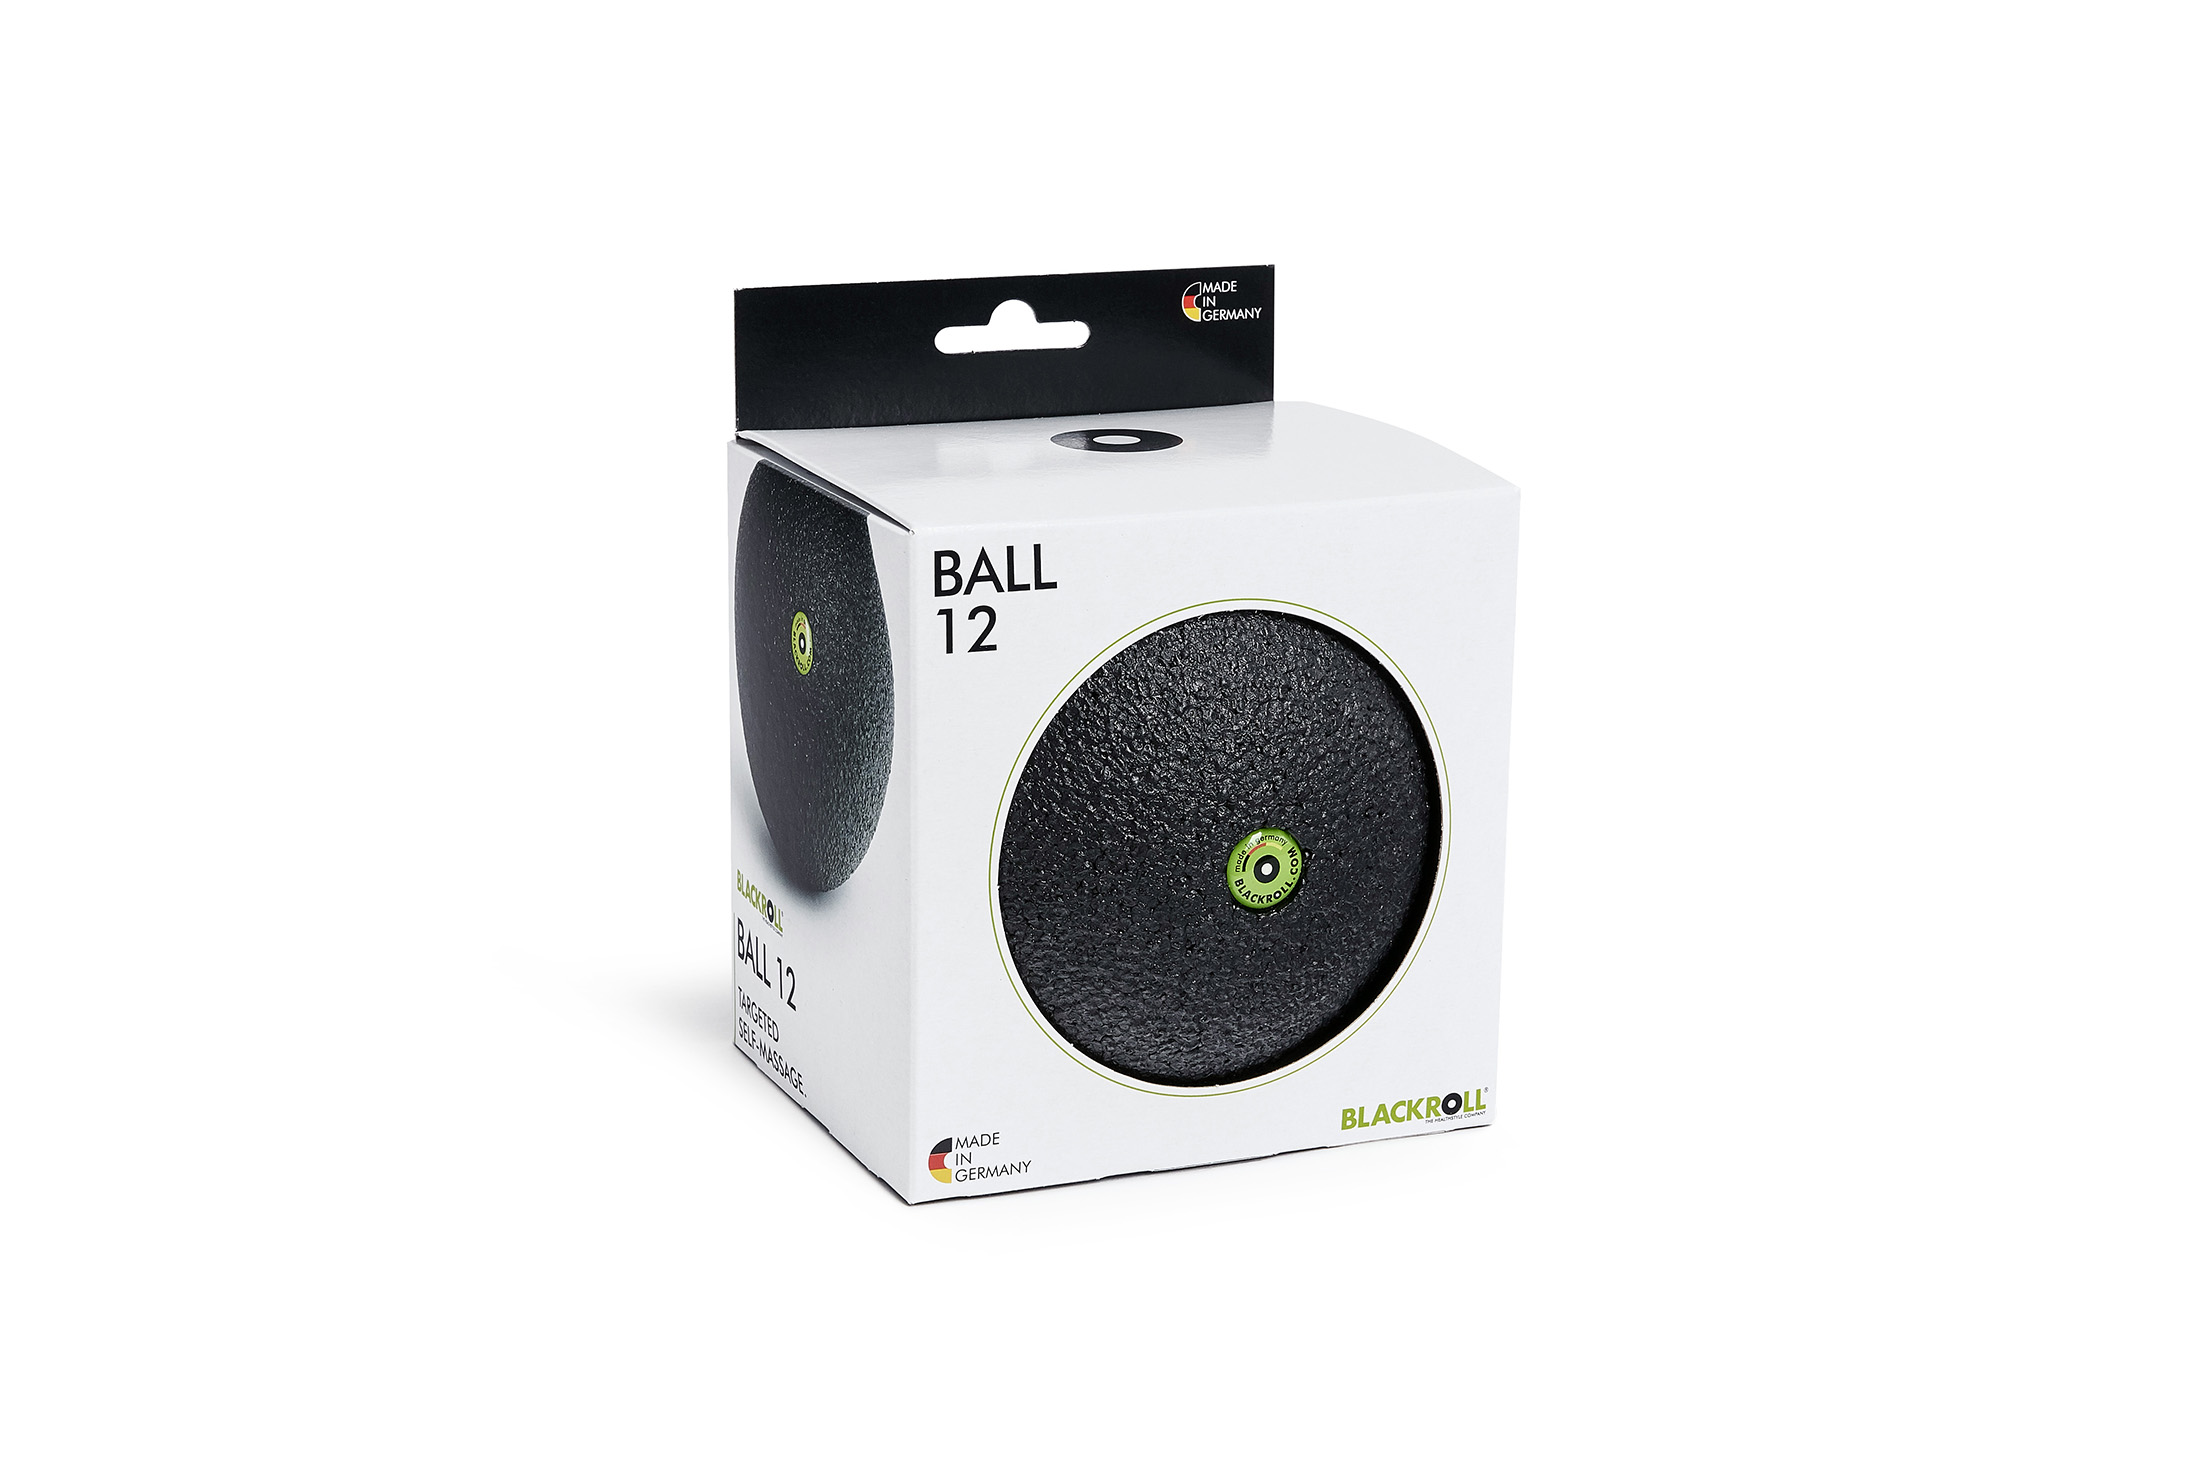 BLACKROLL® BALL 12 black - boxed incl. doming